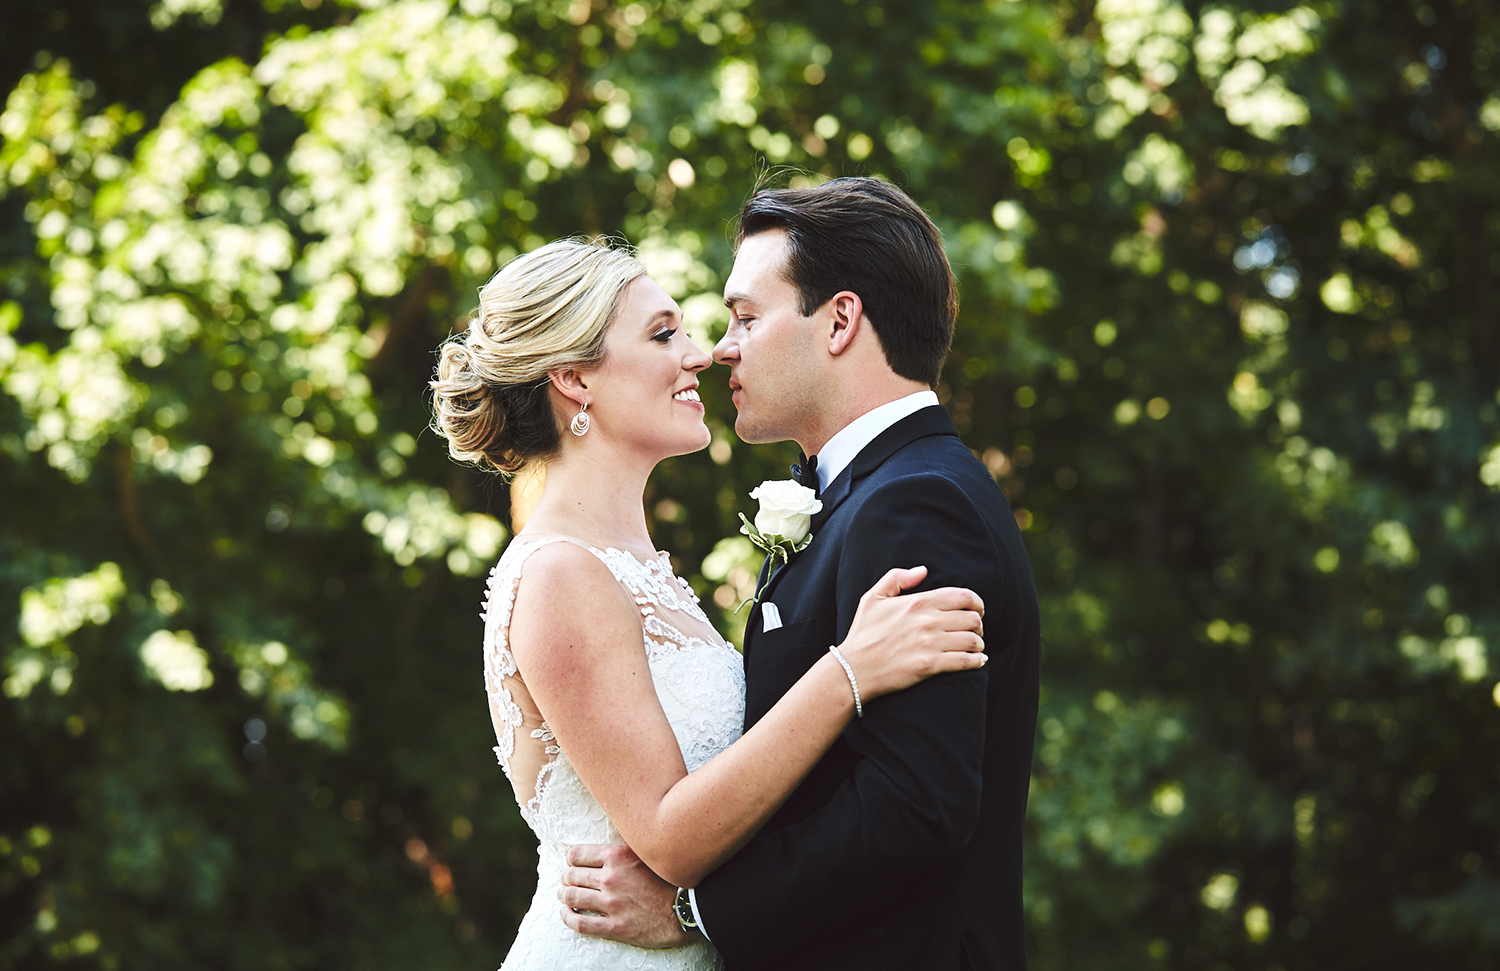 170804_TappanHillMansionWeddingPhotography_NYWeddingPhotographerBy_BriJohnsonWeddings_0050.jpg